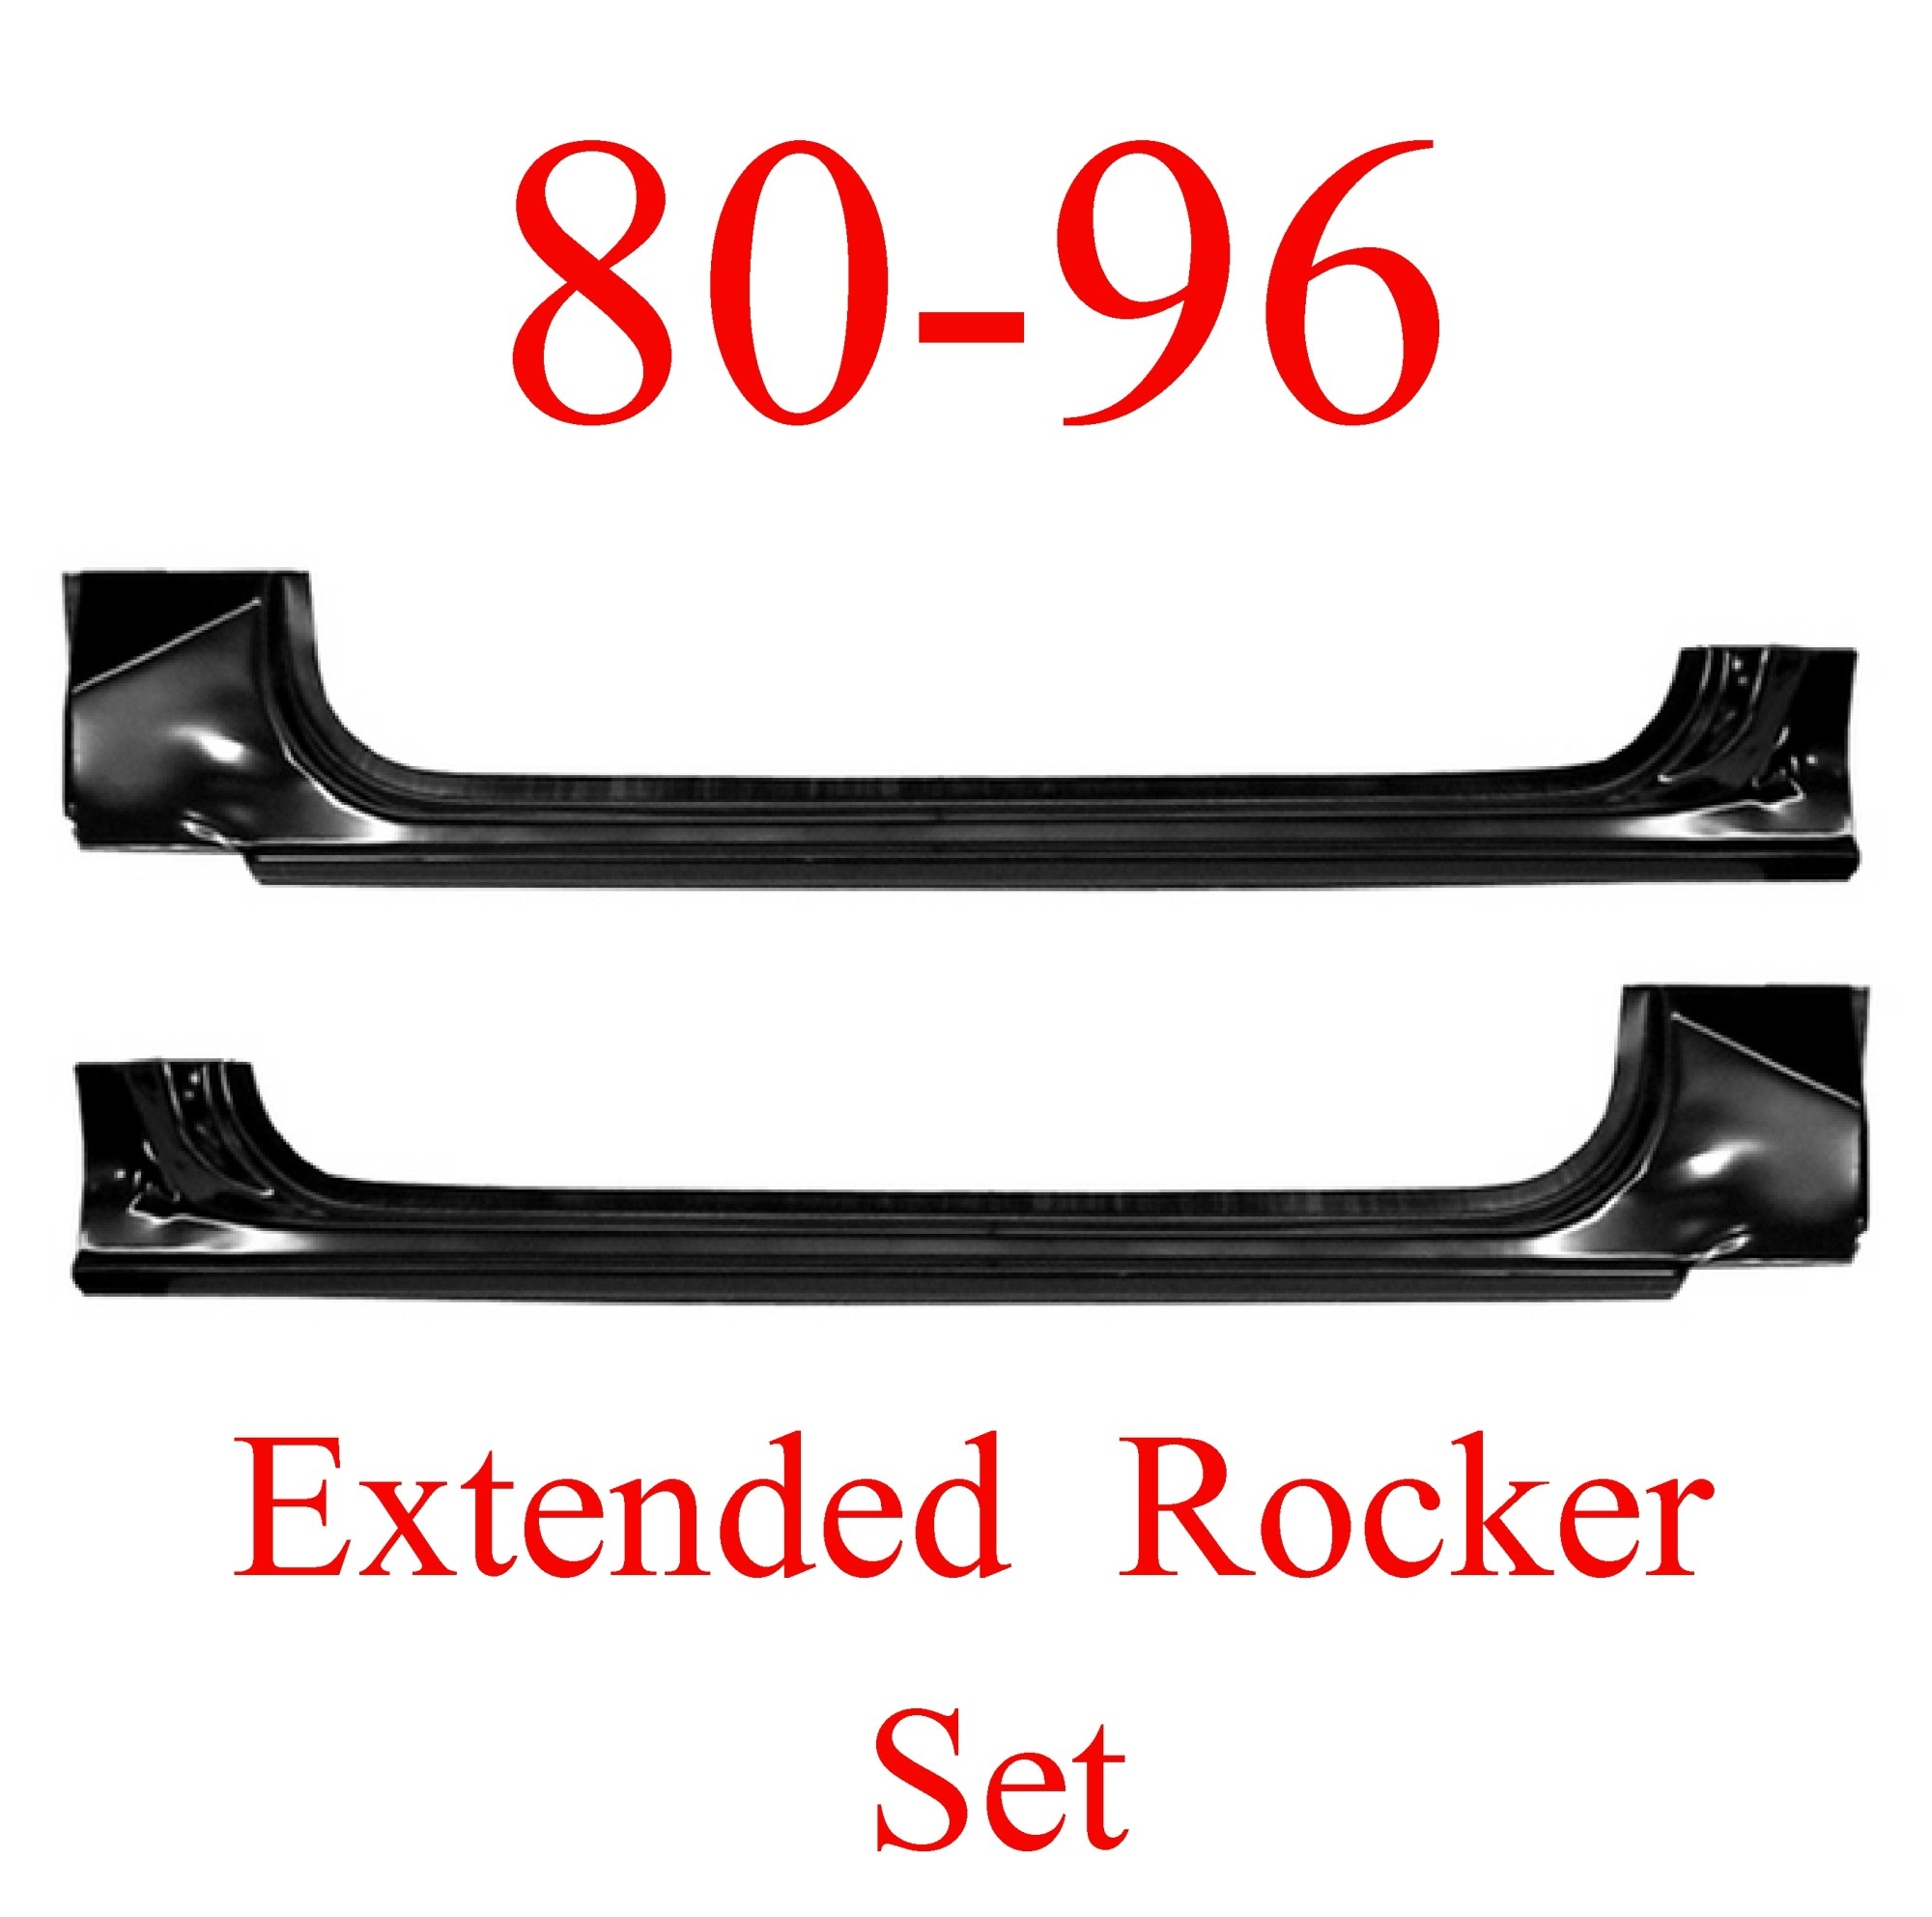 hight resolution of 80 96 ford extended rocker panel set truck bronco